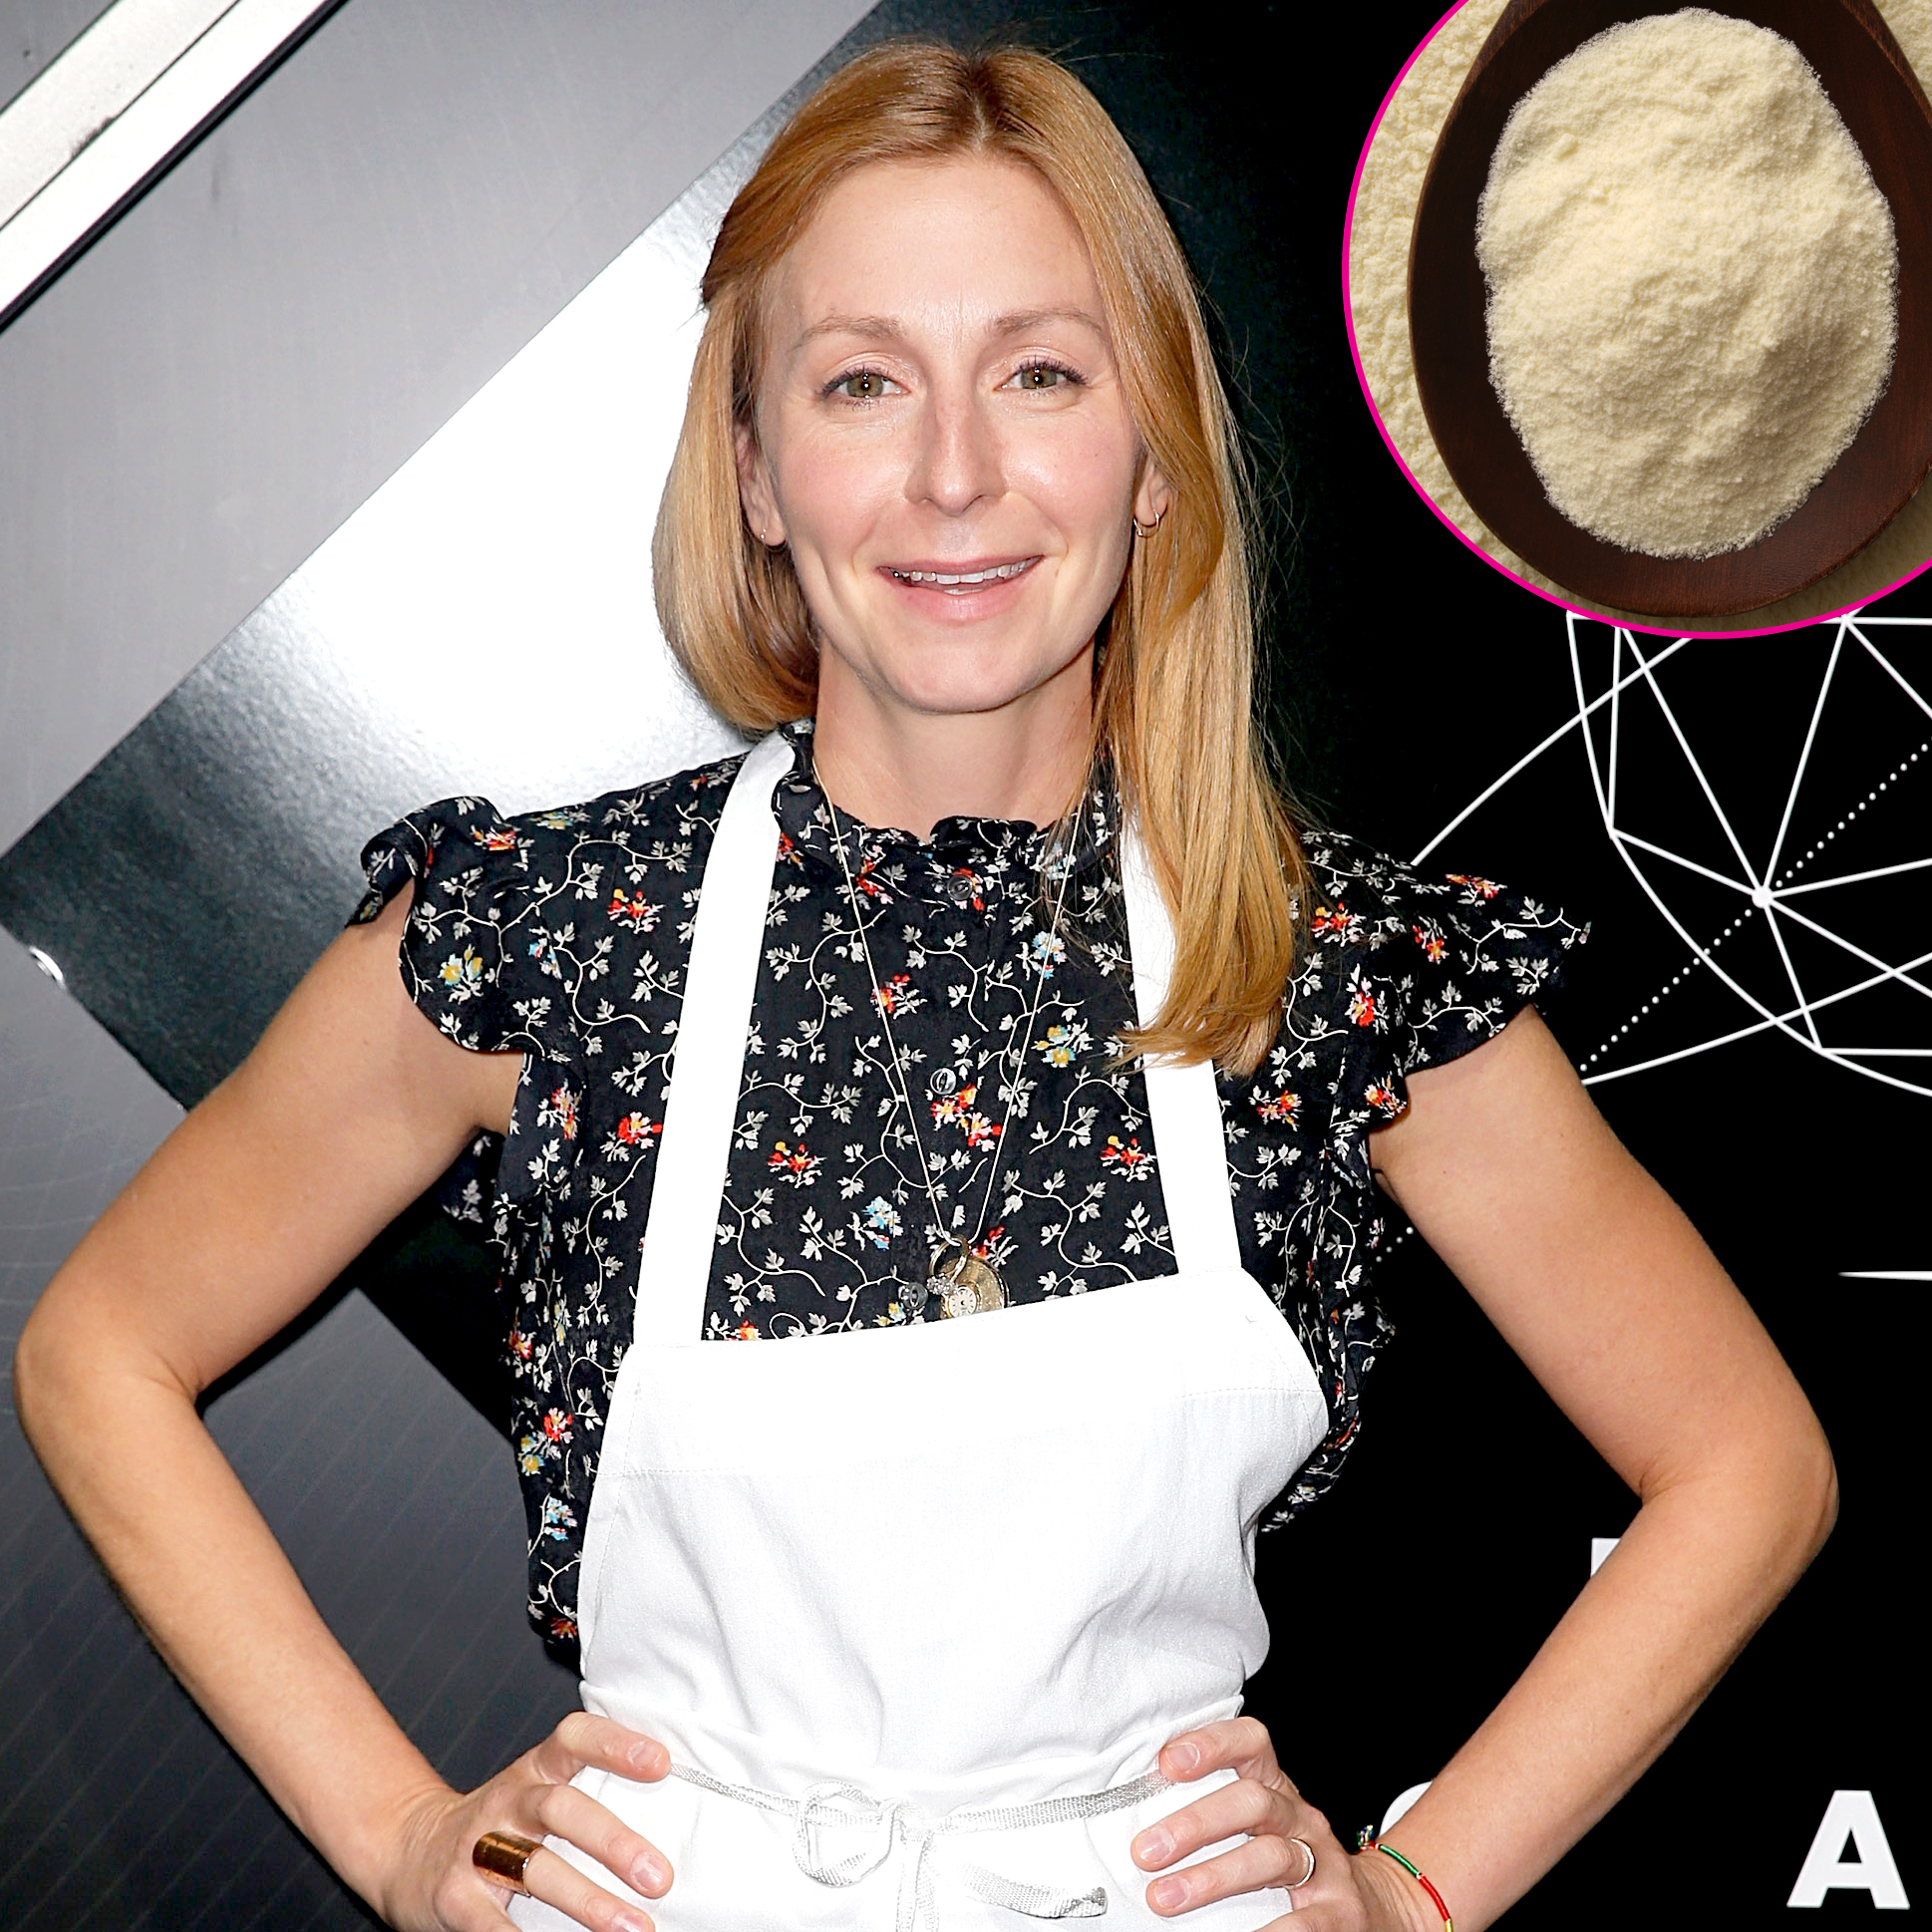 Christina-Tosi's-Milk-Powder-Baked-Goods - The MasterChef Junior judge is famous for her decadent baked goods, which she whips up with the help of a rather banal ingredient: milk powder. The dried food apparently makes her famous desserts even richer.